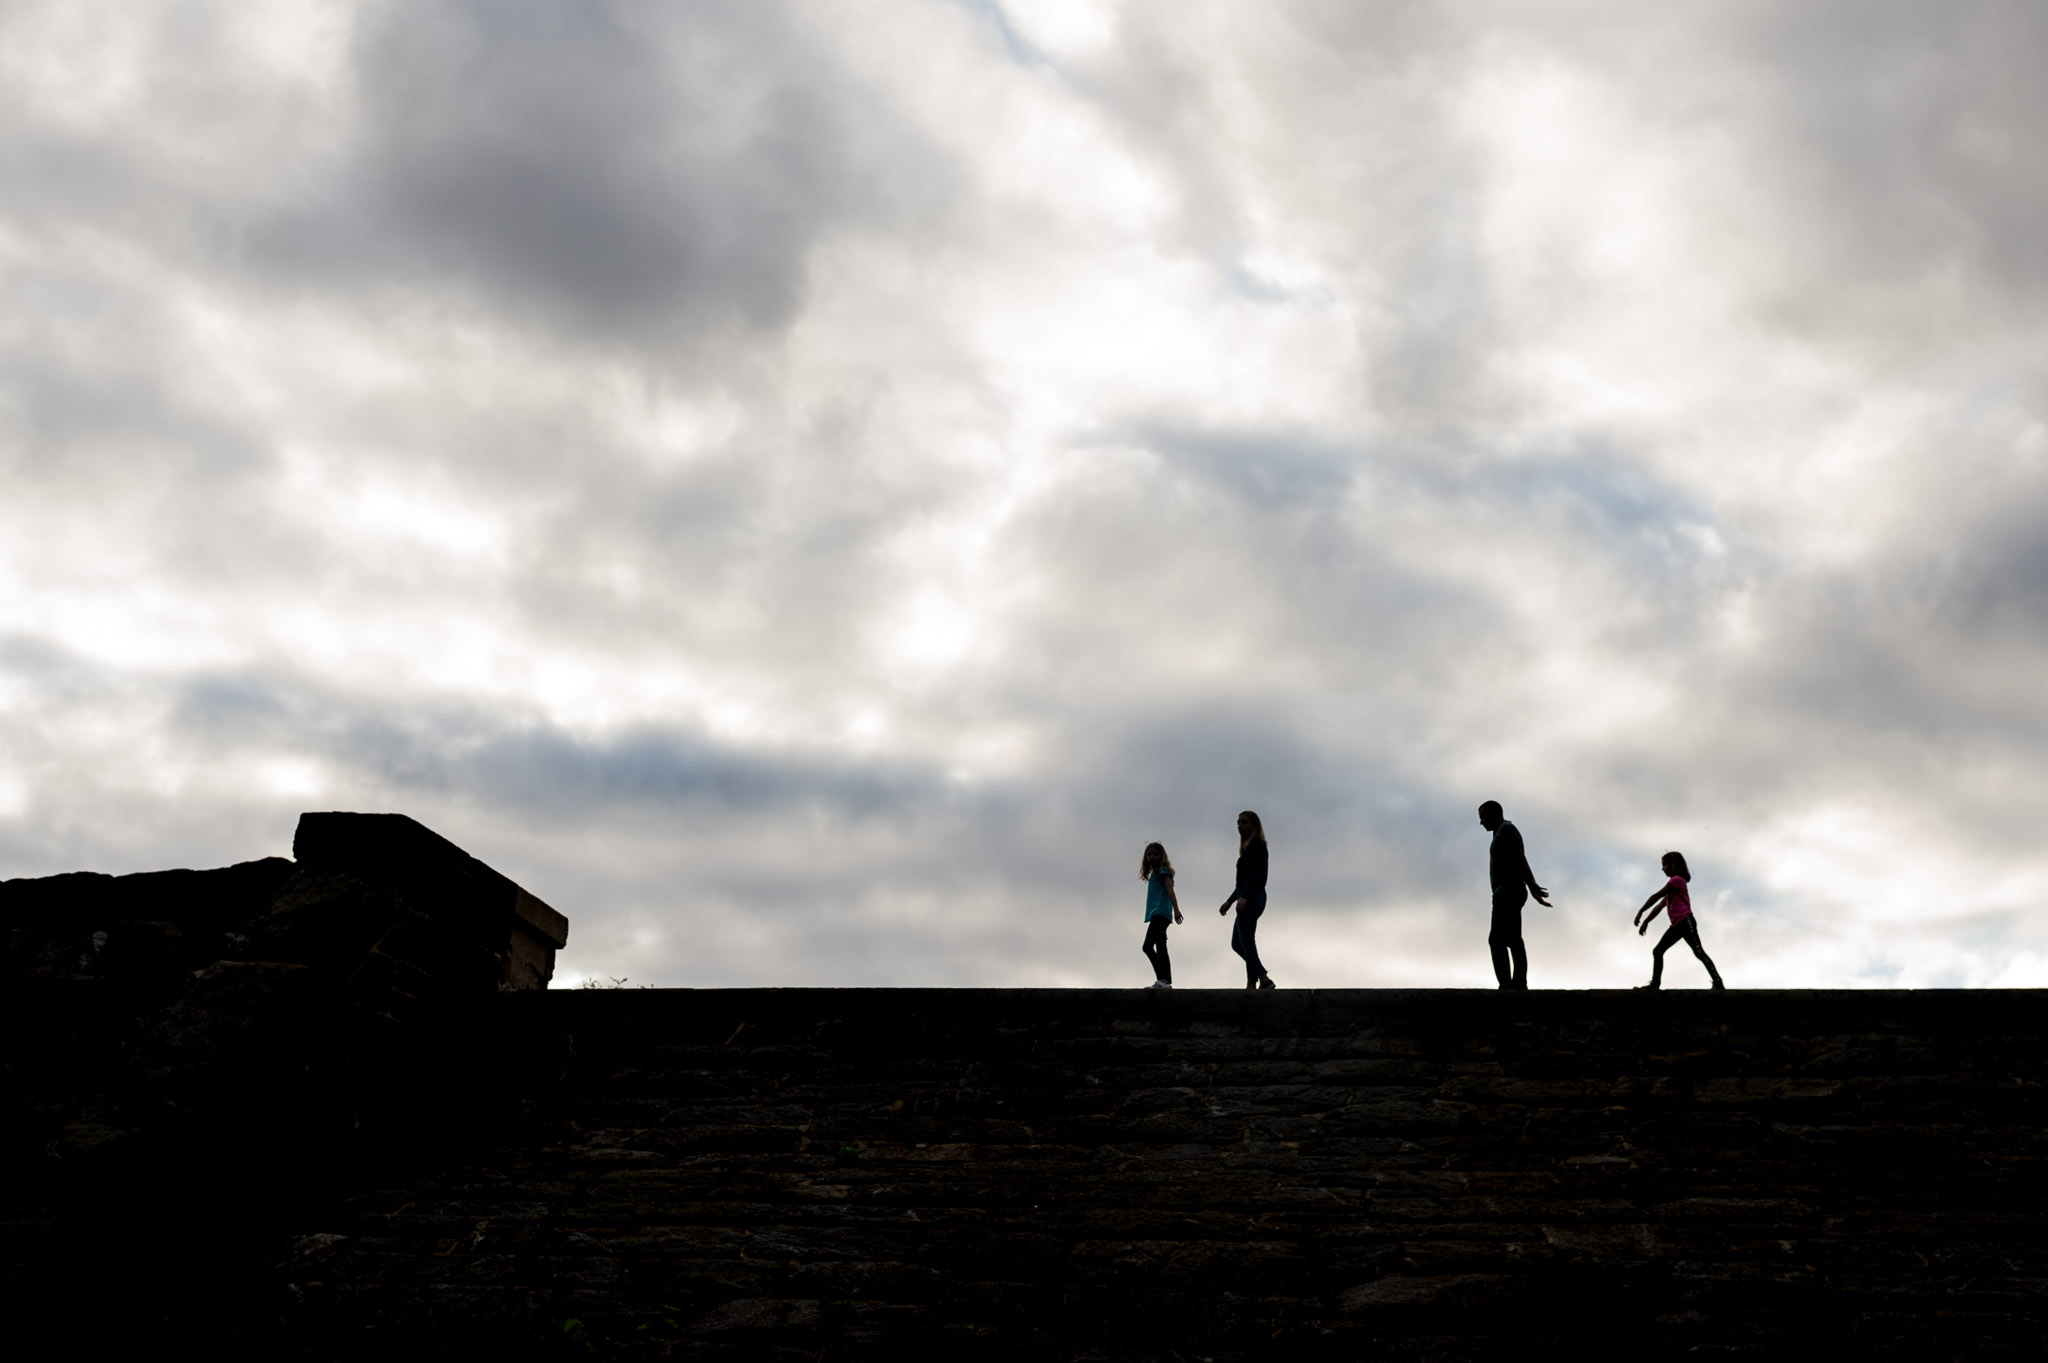 family portrait silhouette in Larchmont, NY by Erin Borzellino